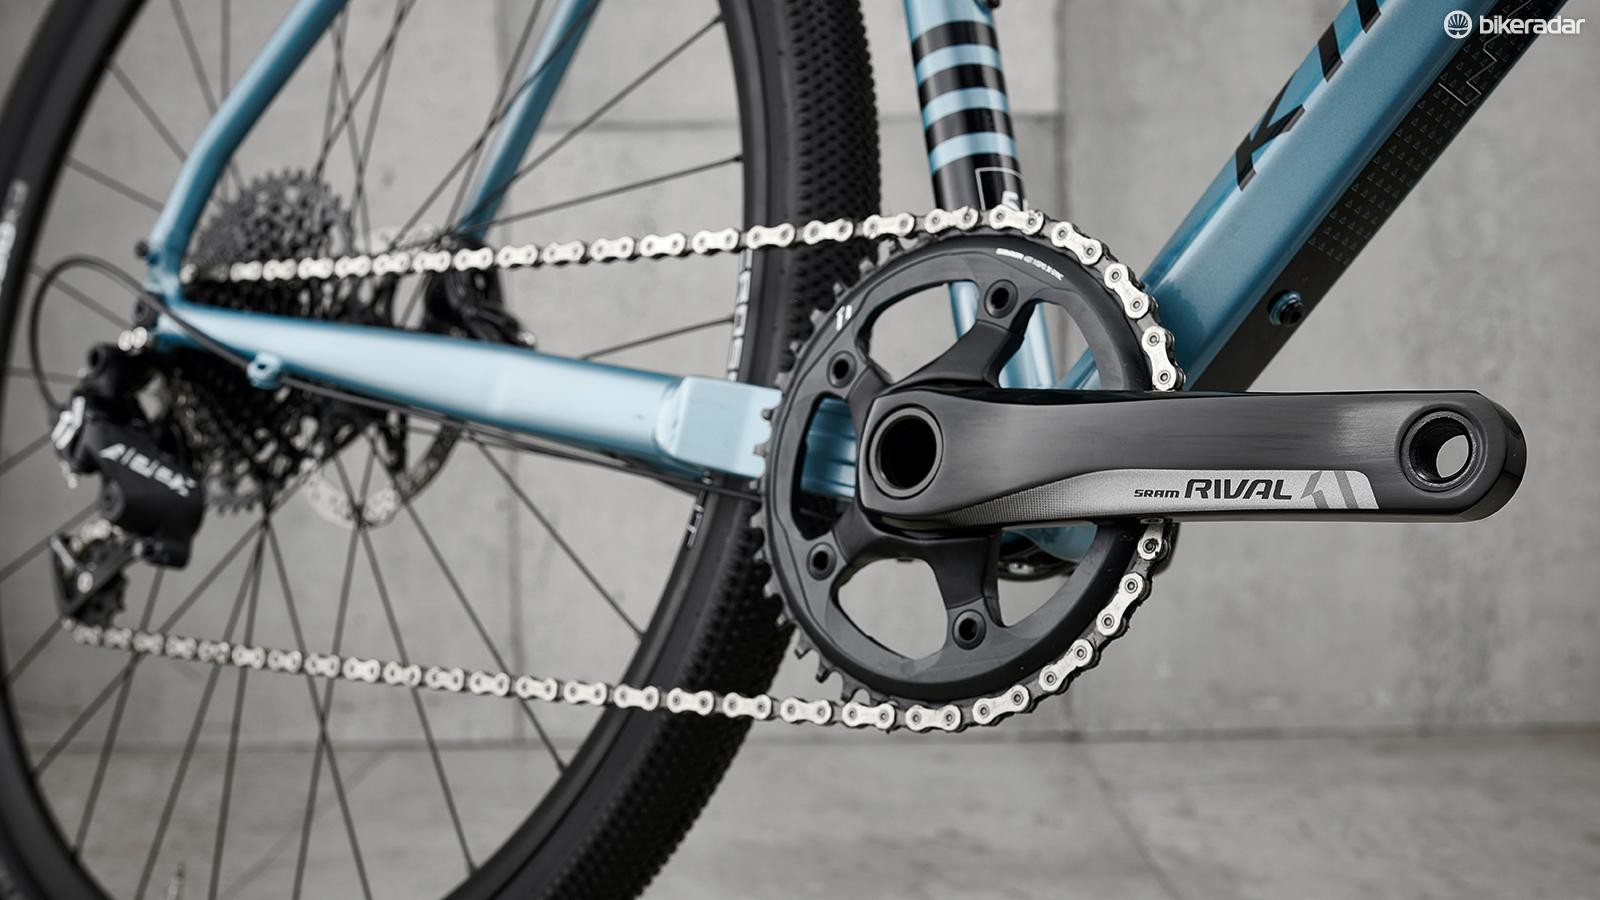 SRAM Rival cranks join the Apex drivetrain